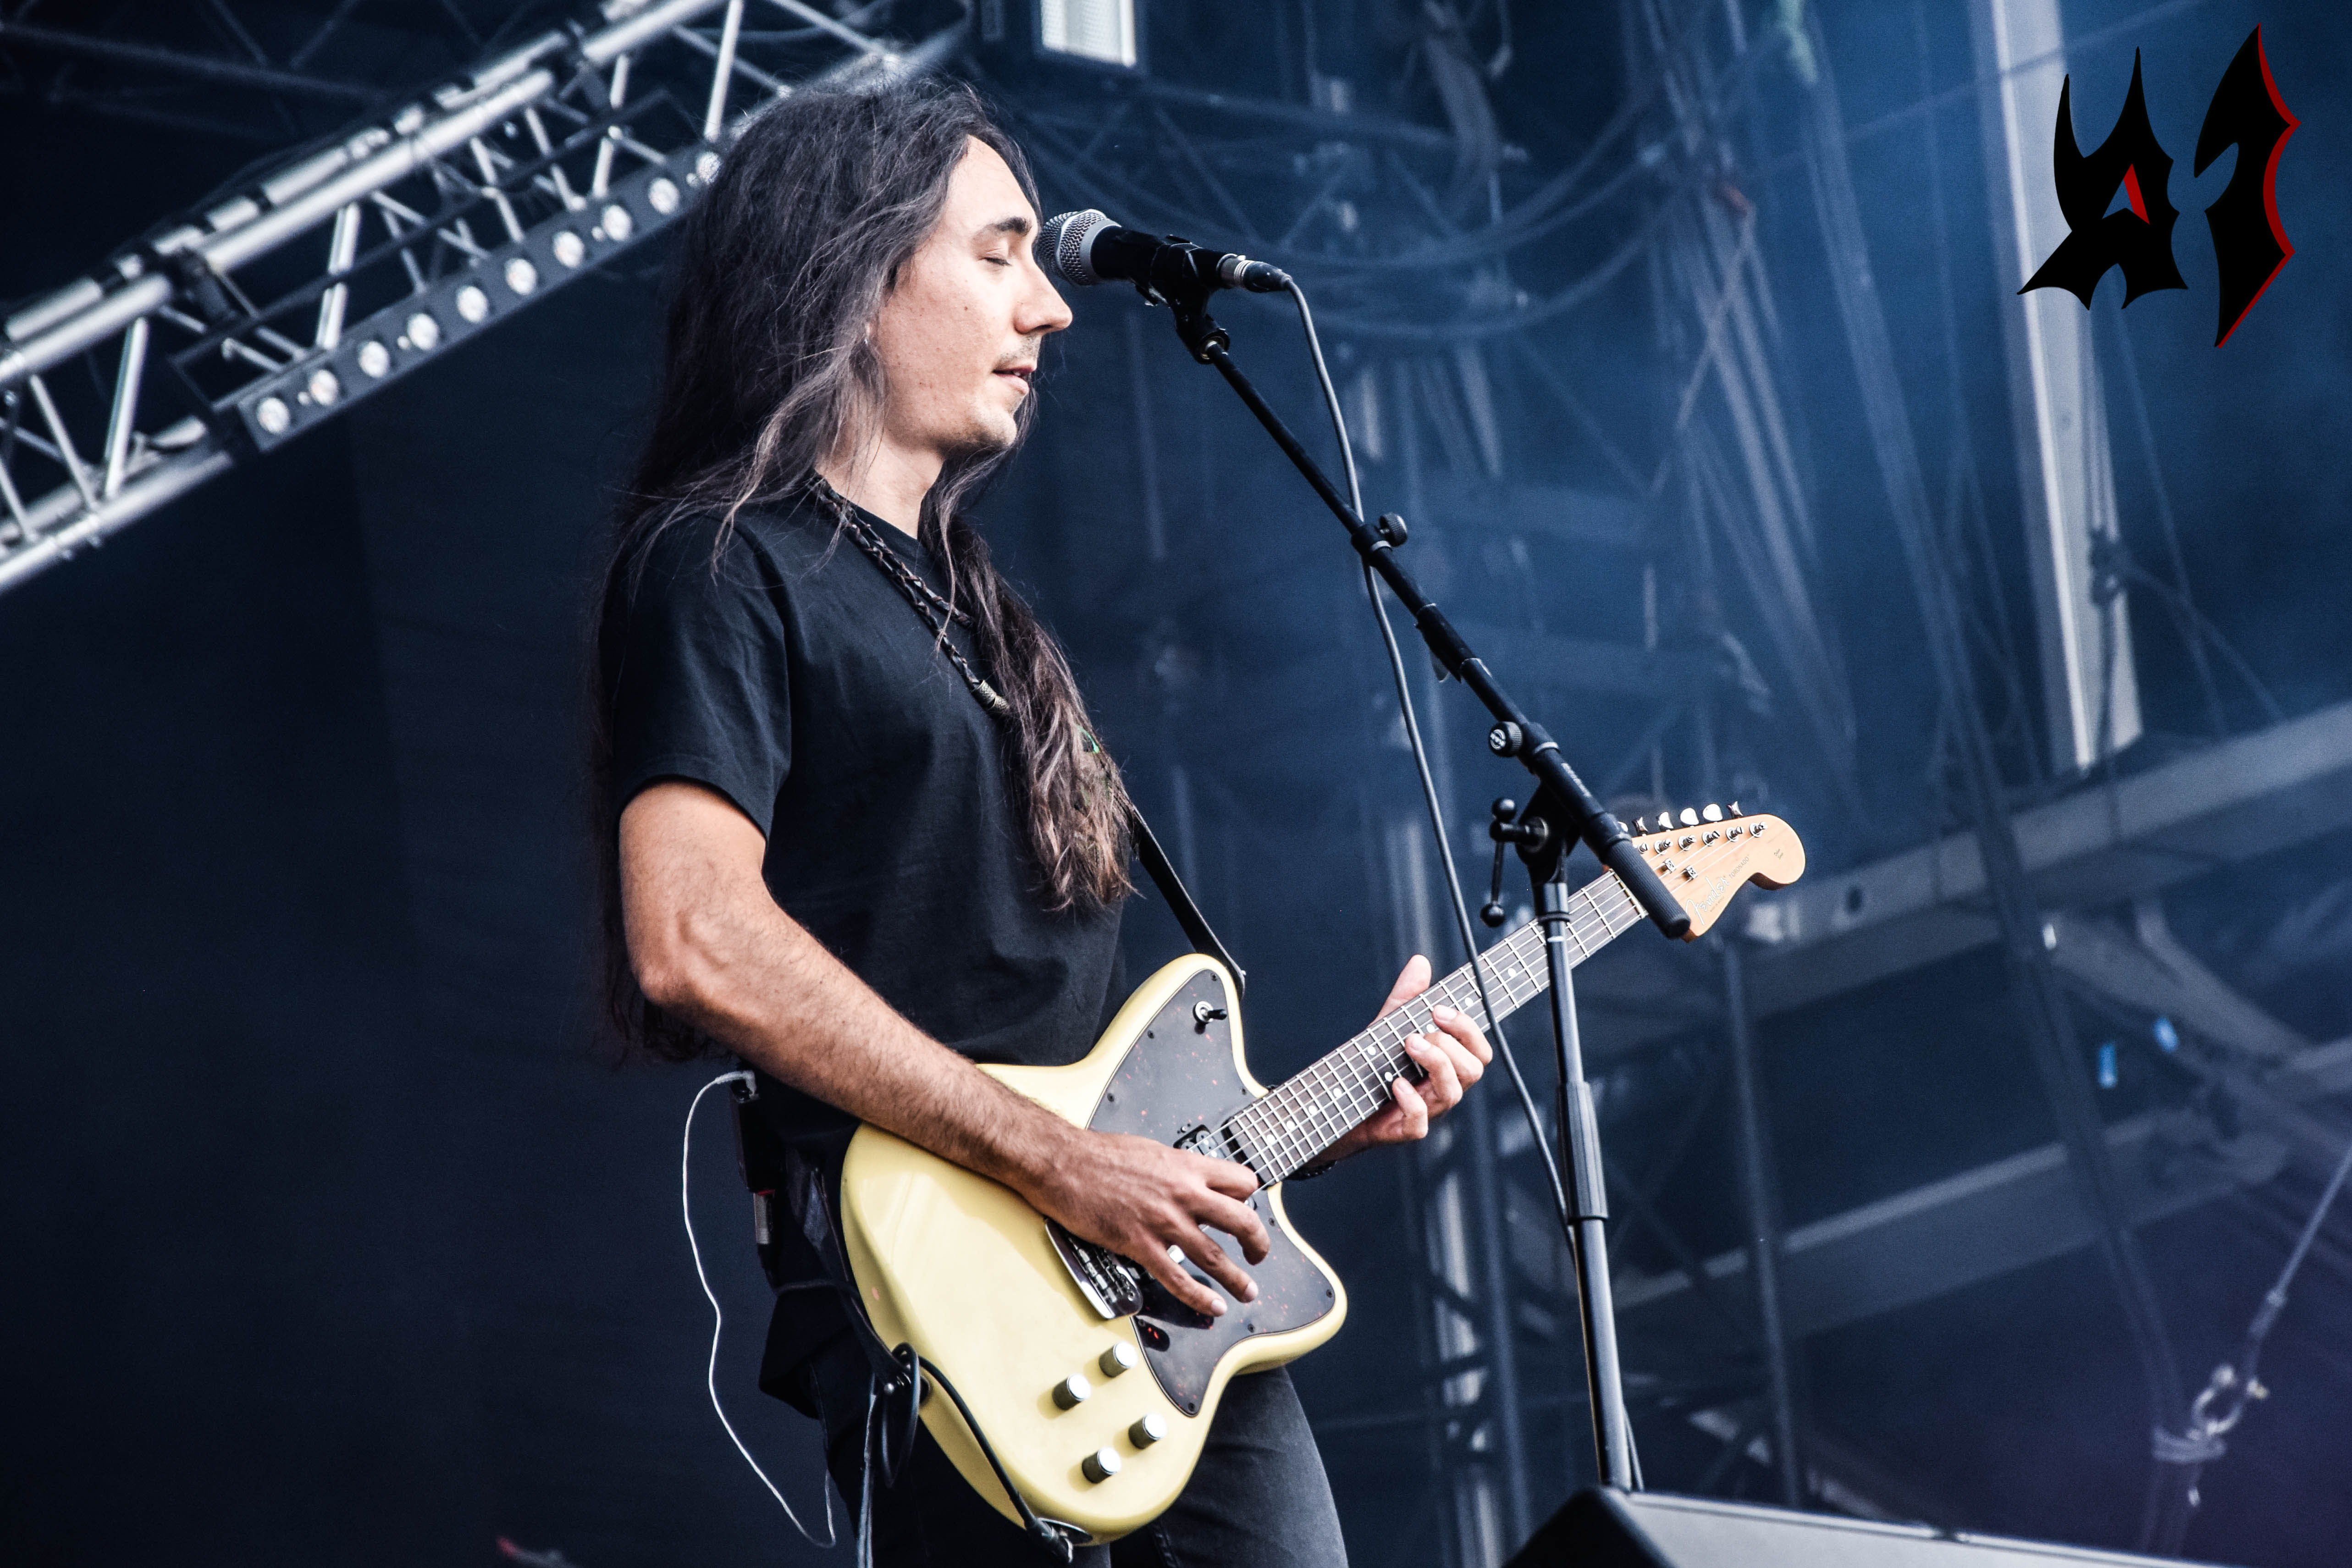 Donwload 2018 – Day 2 - Alcest 15